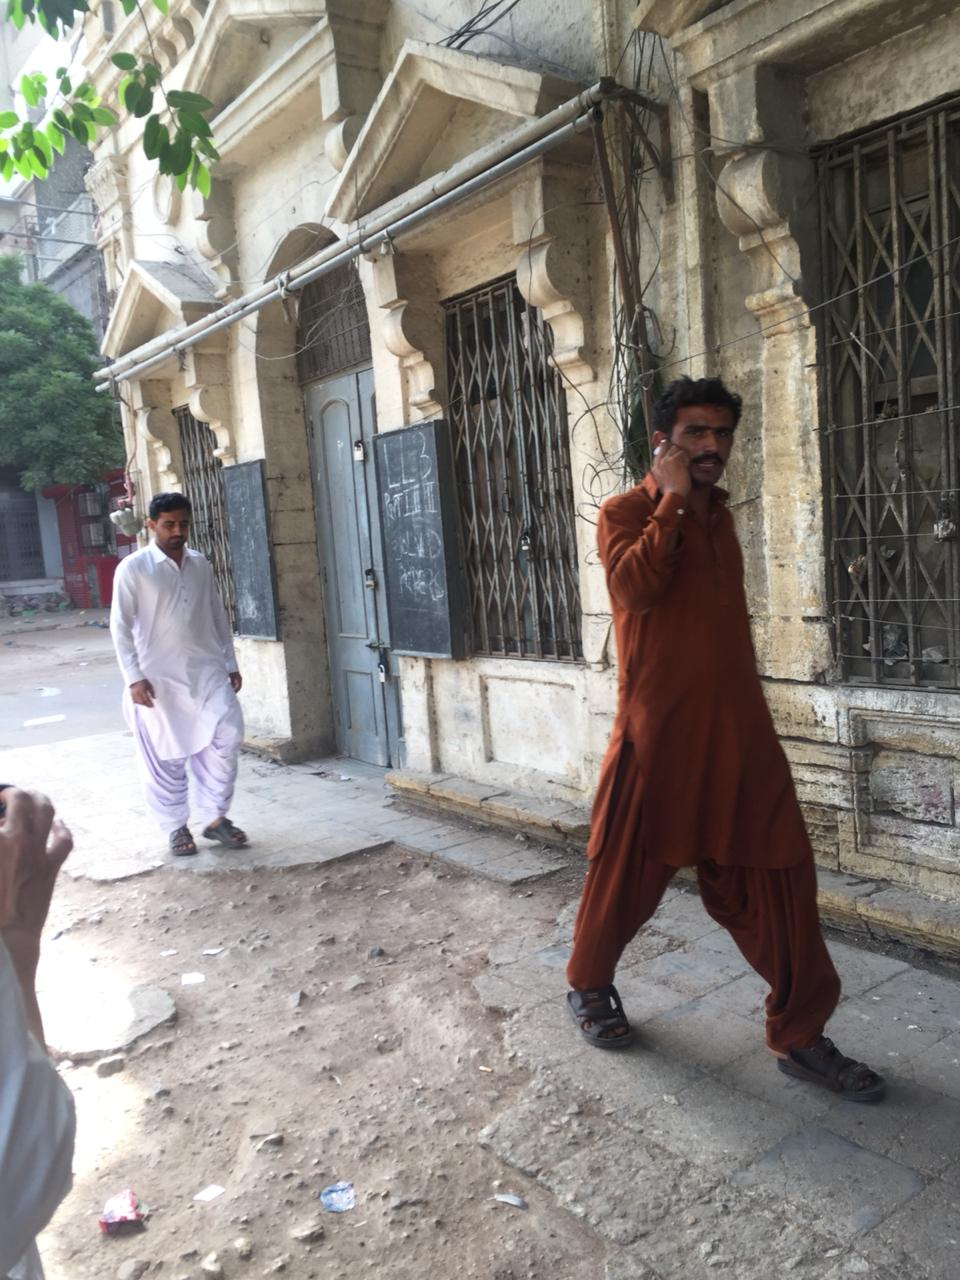 Two men walking on the side-walk in the inner city of Old Town, Karachi | Copyright Marvi Mazhar & Associates